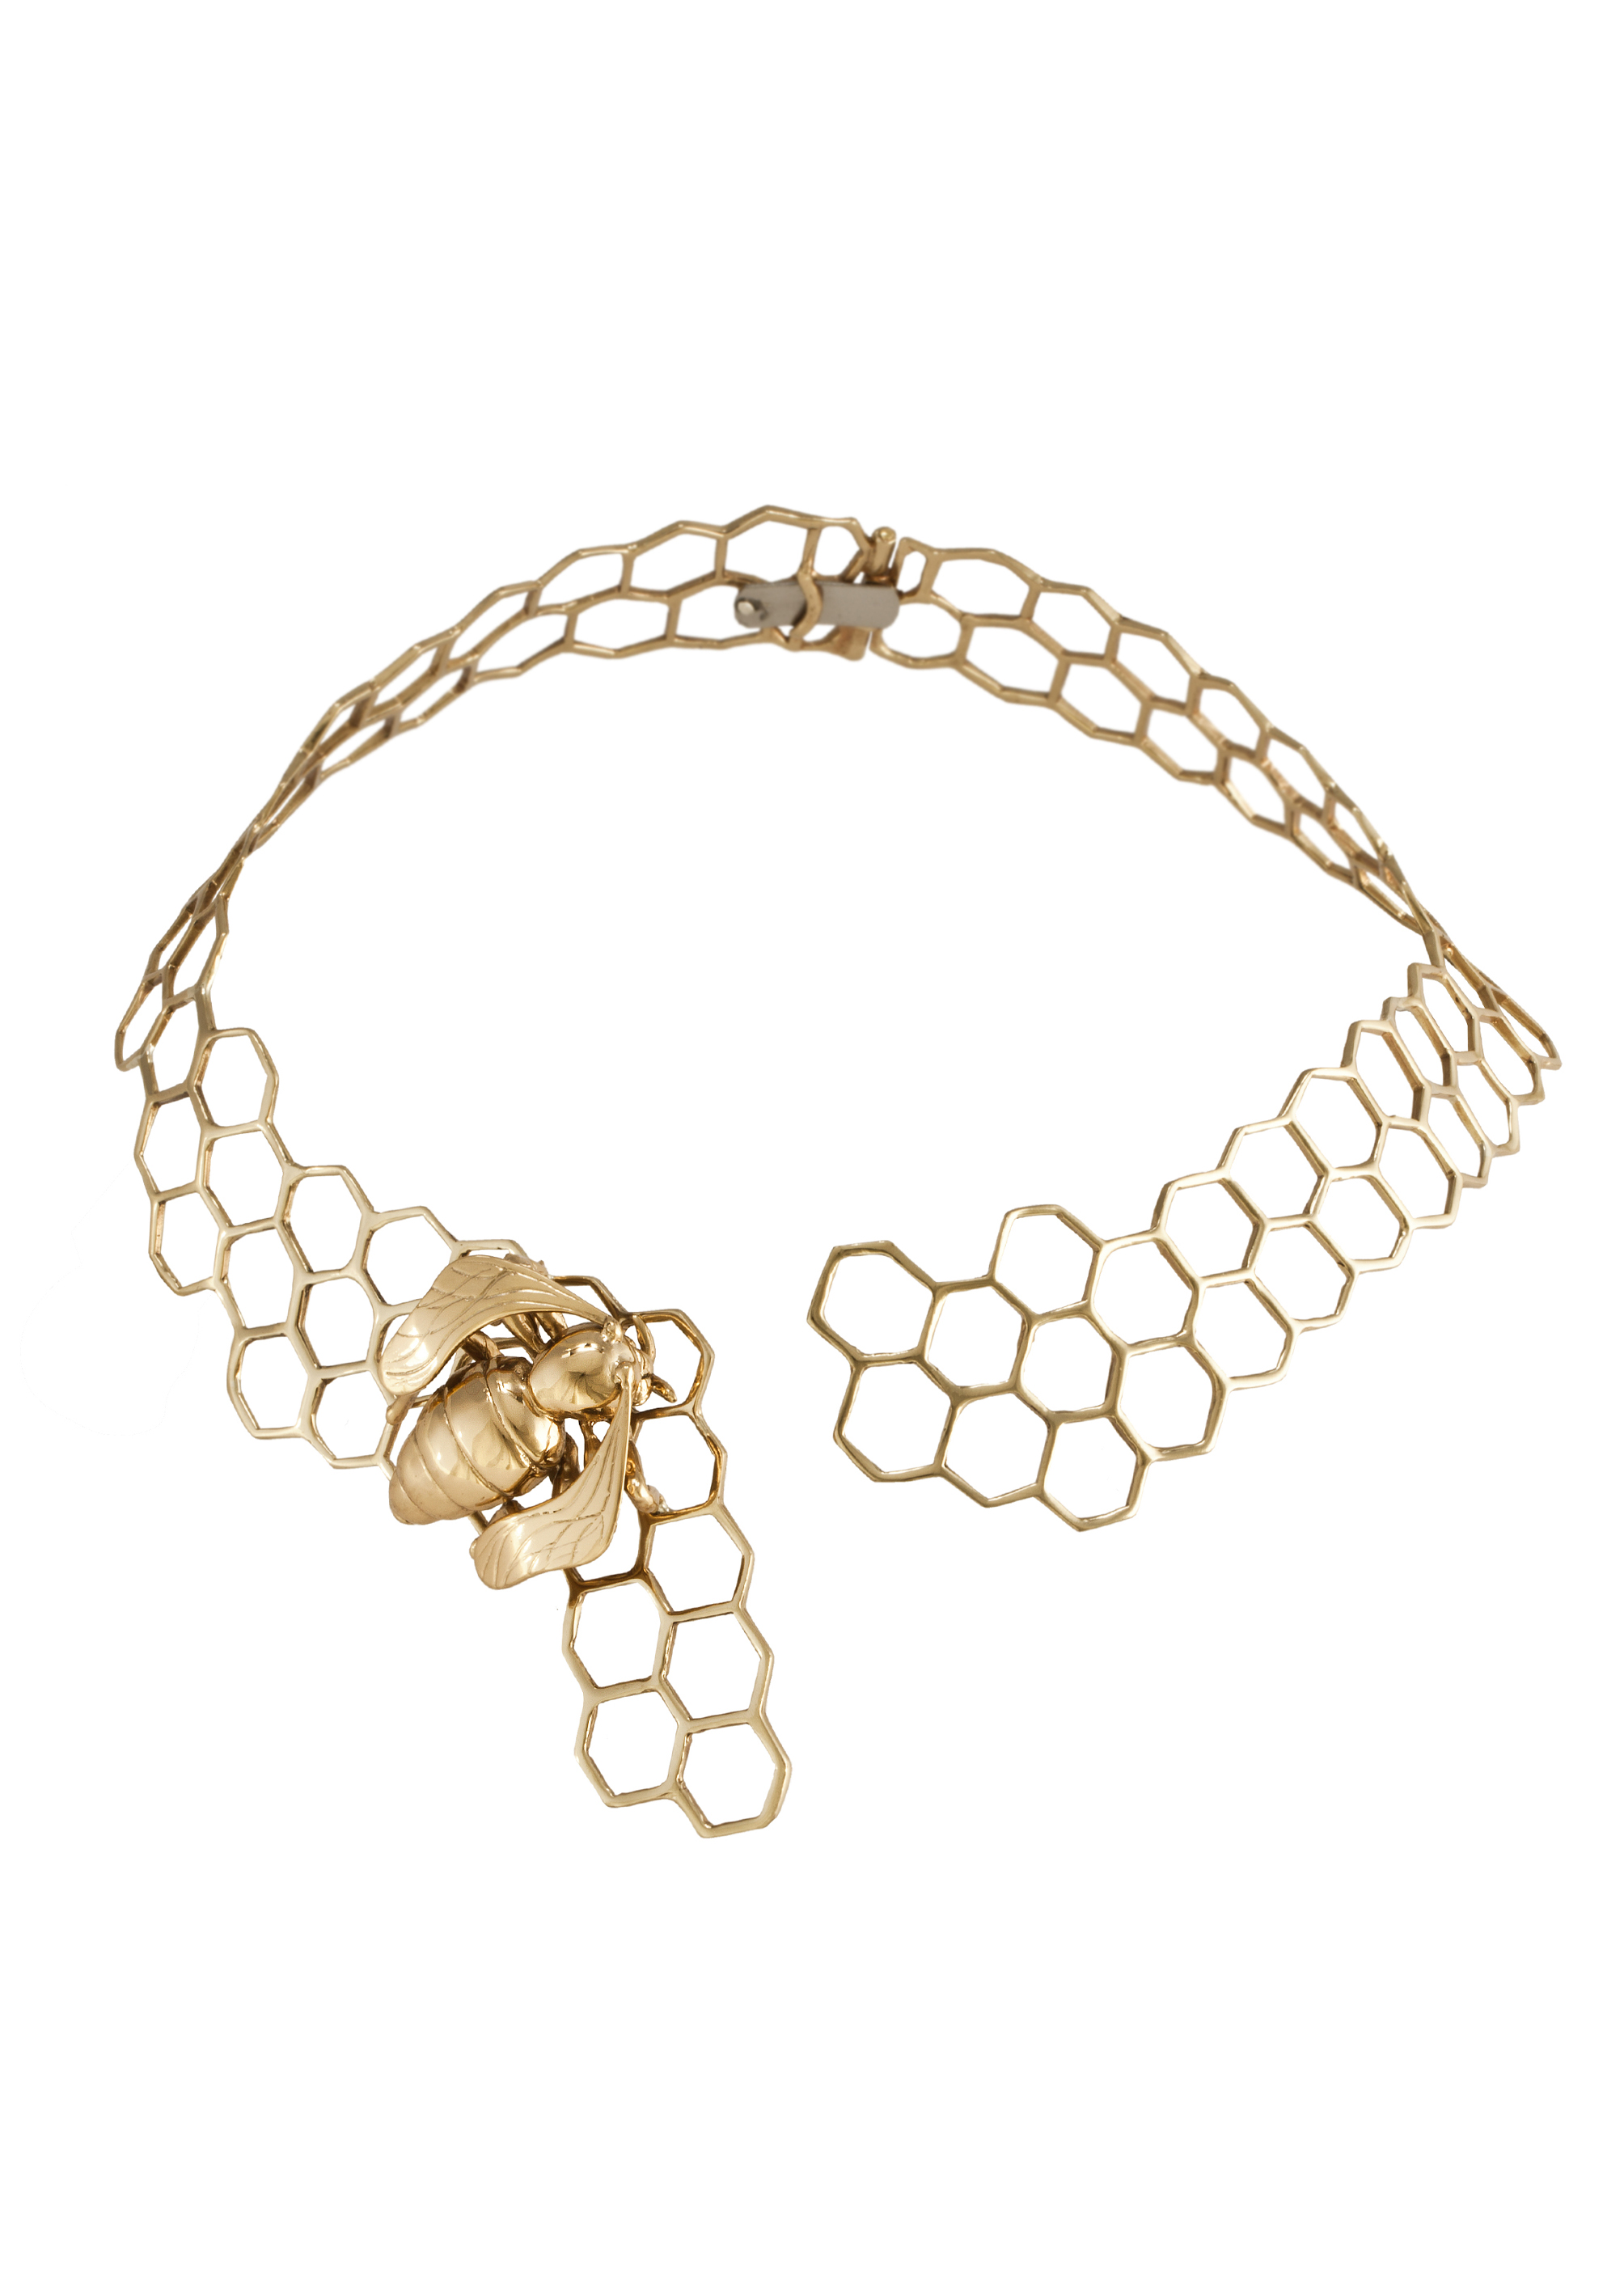 Brass honeycomb necklaces with bee